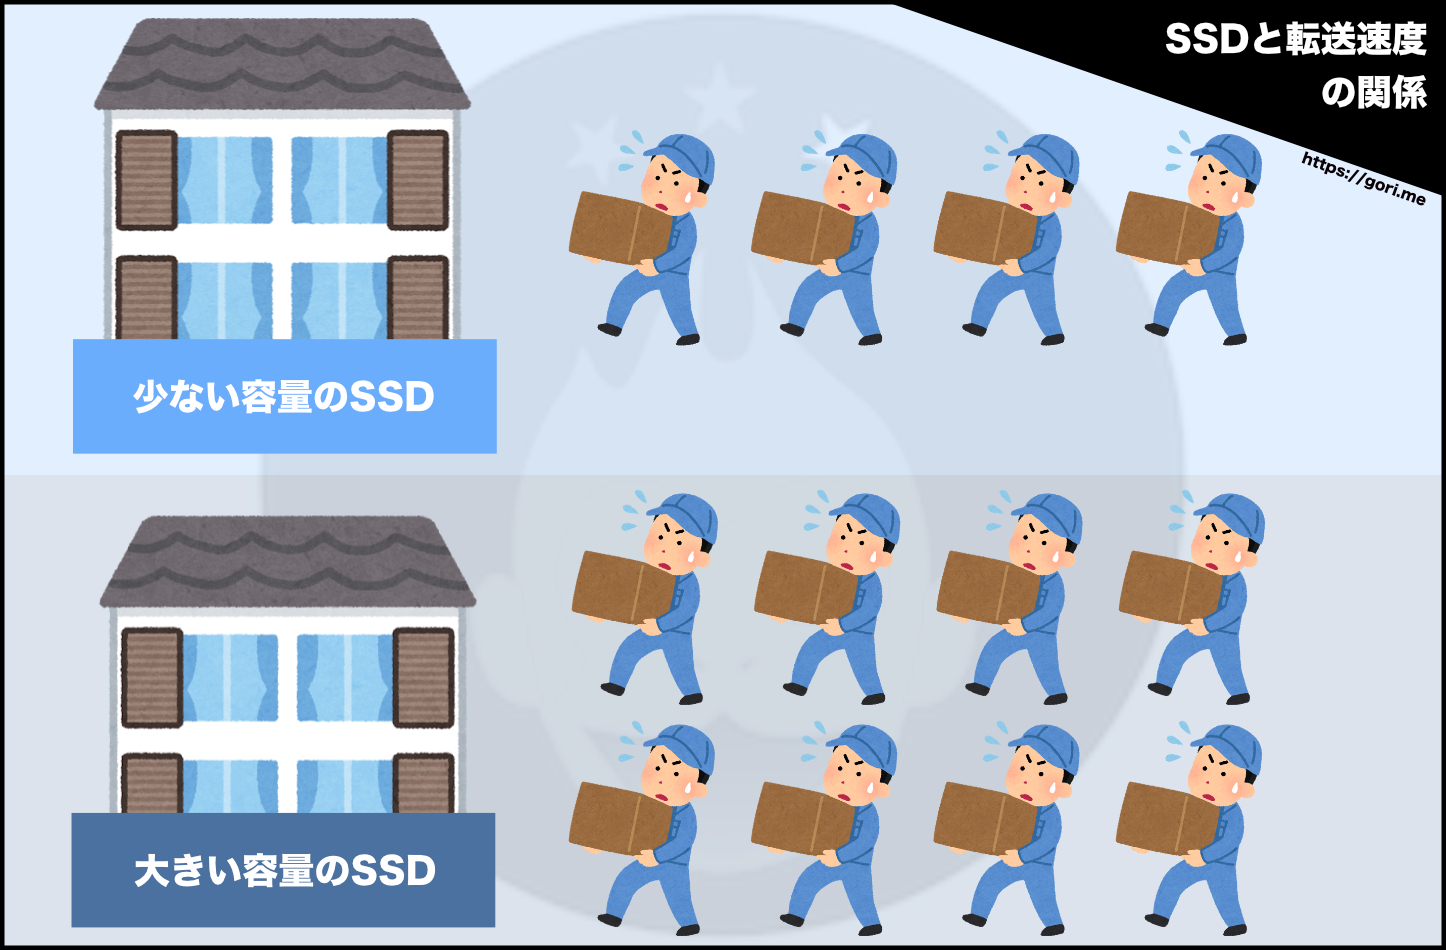 SSD-Speed-and-Storage-2